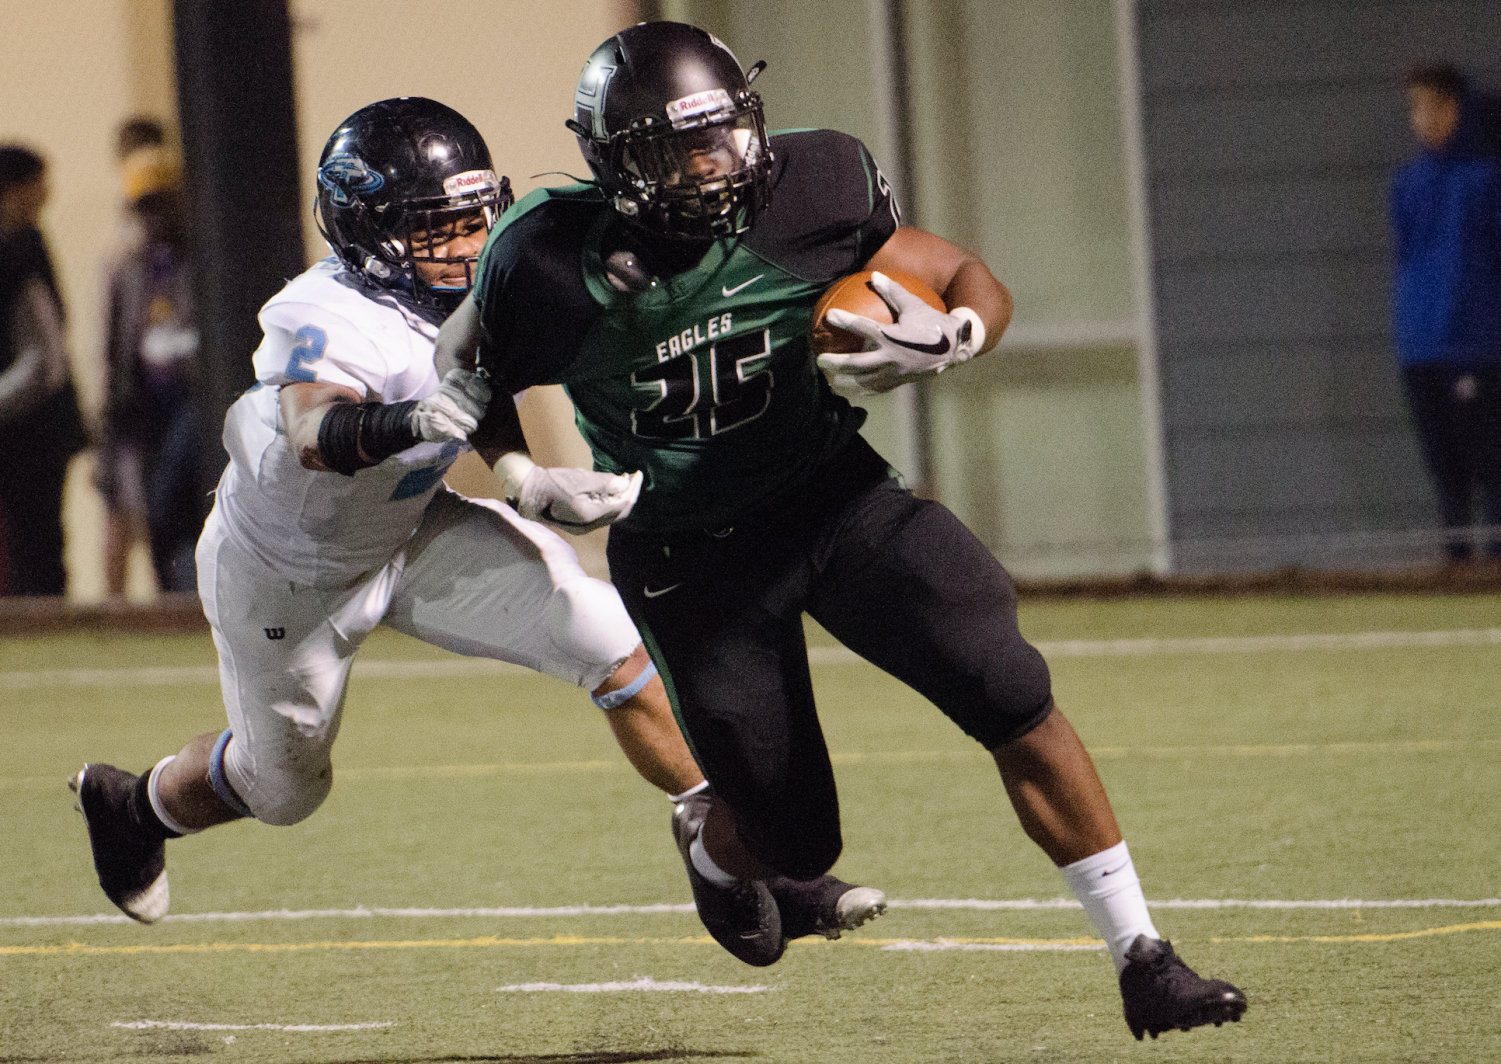 Aaron Smith (11) attempts to outrun a Hercules player. The football team ended the season with eleven wins and one loss.